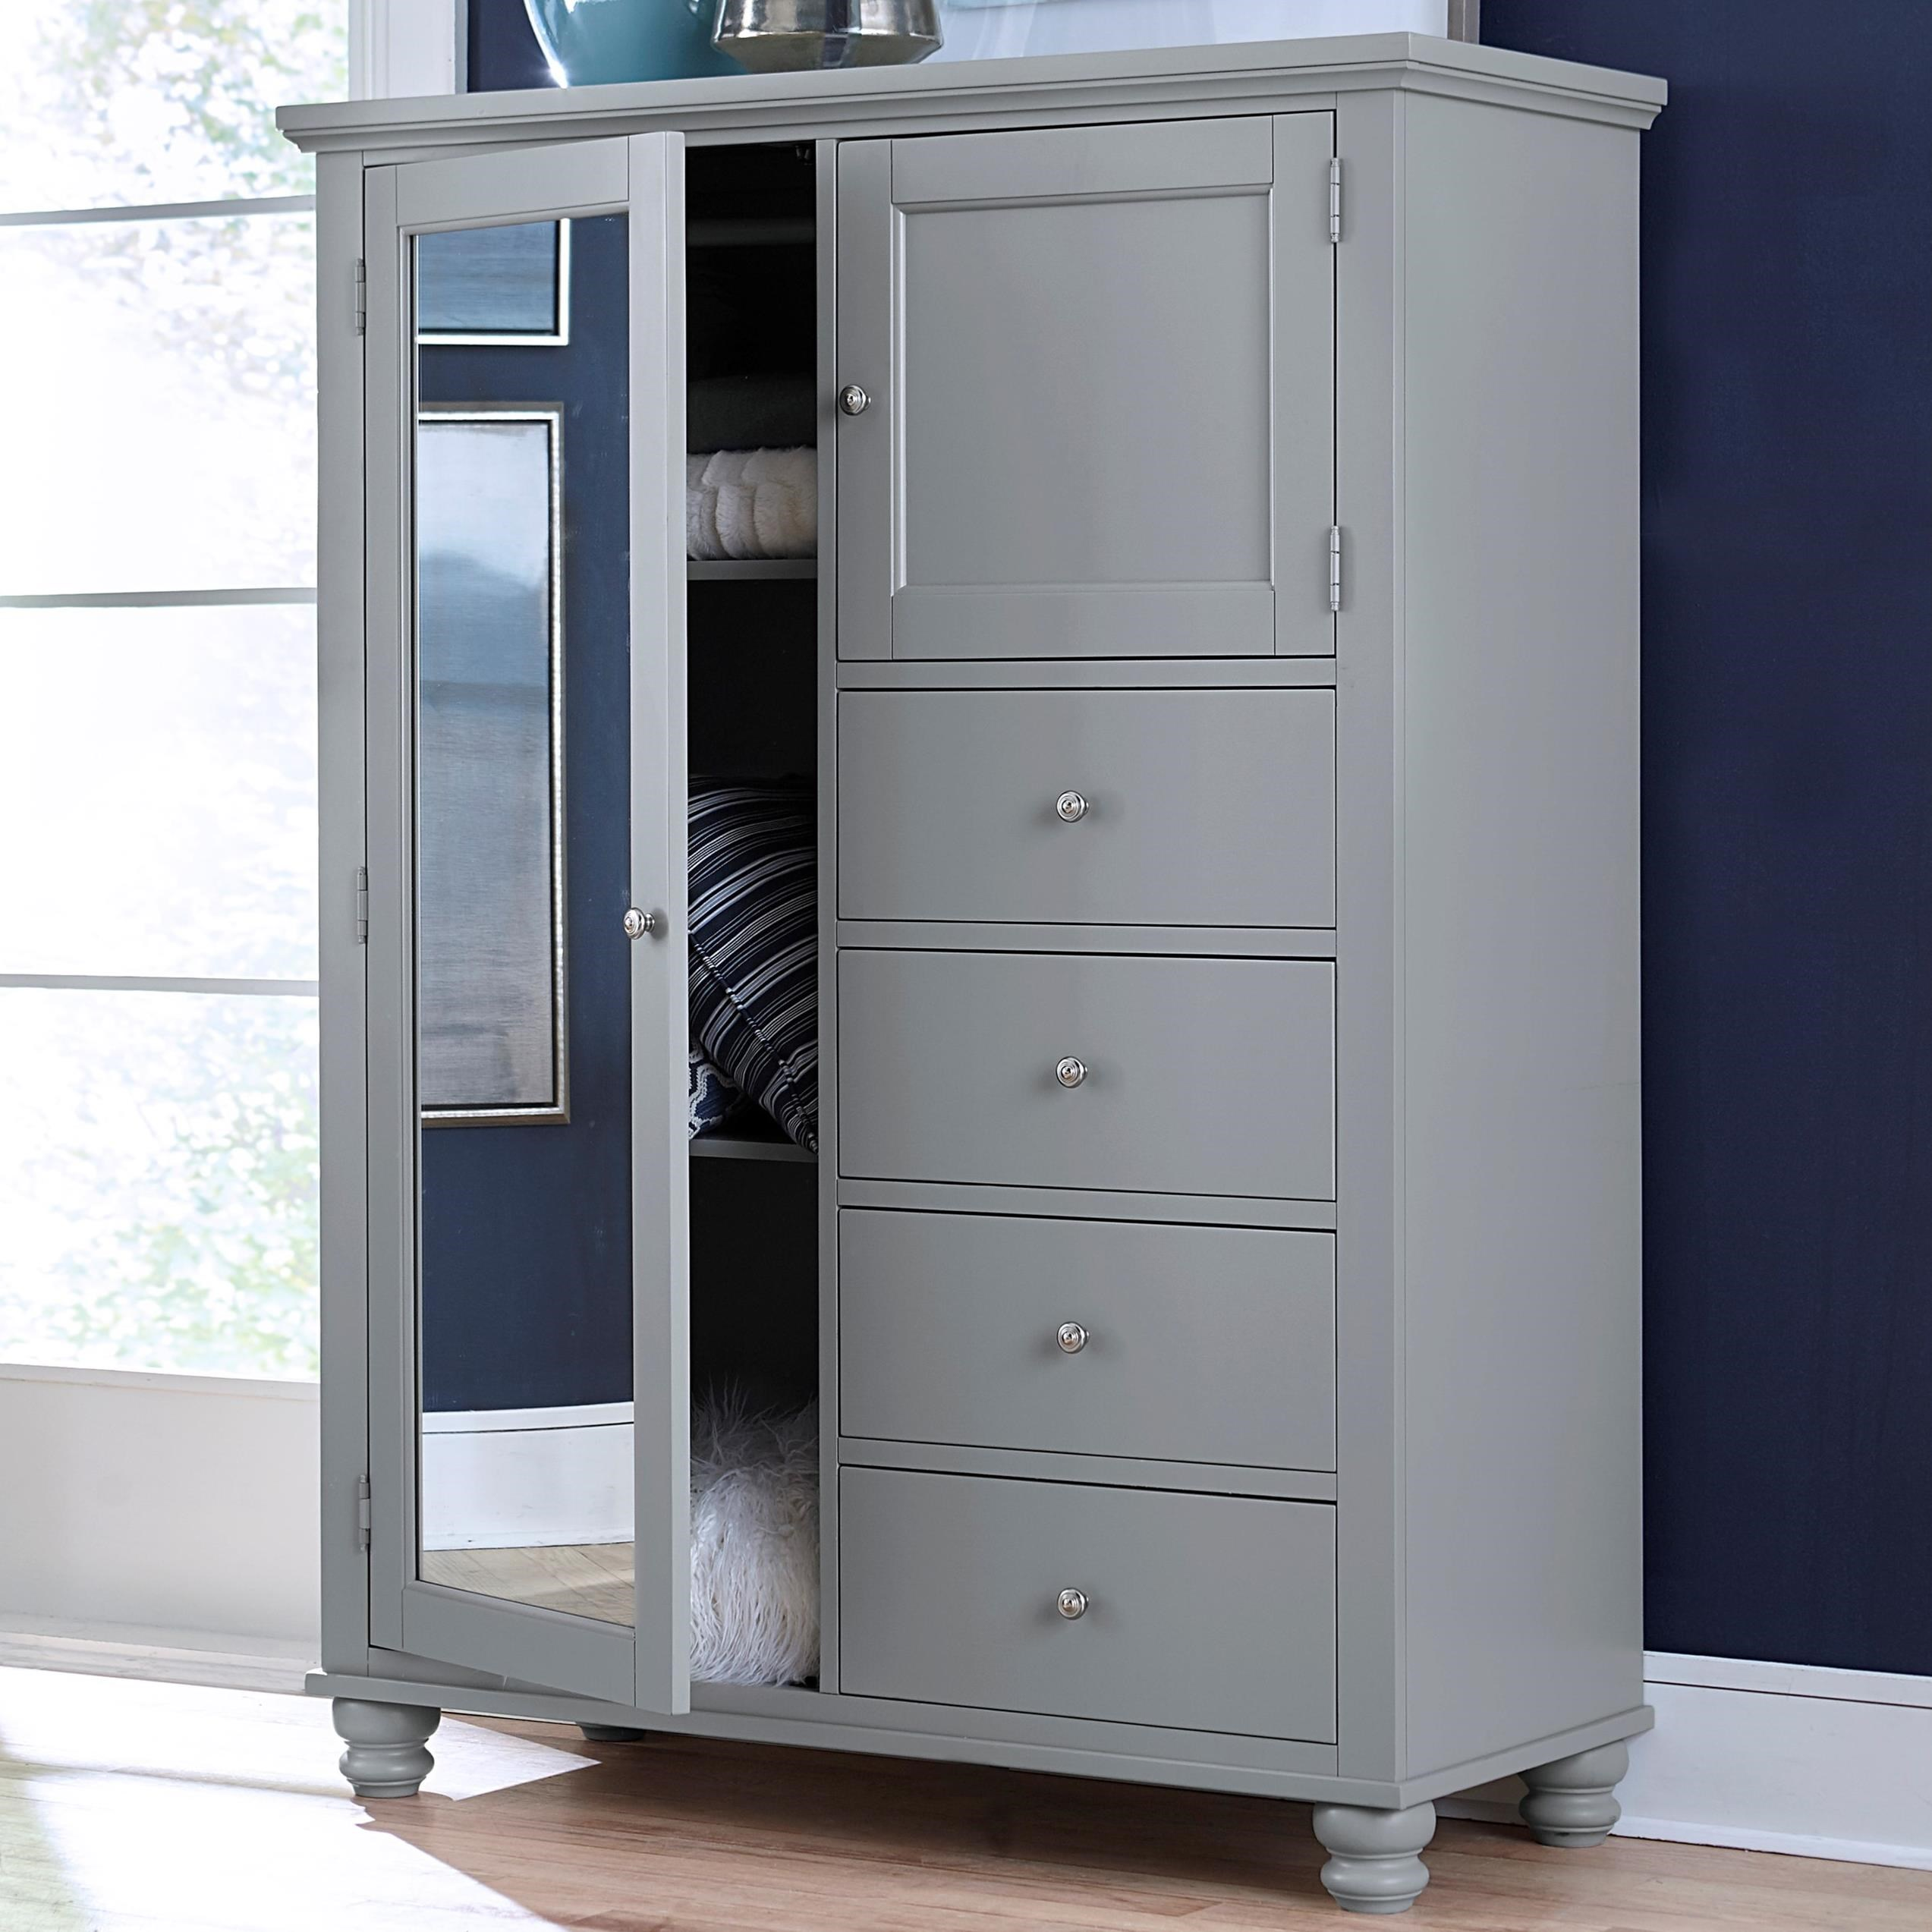 Cambridge 4 drawer 2 Door Chiffarobe  by Aspenhome at Stoney Creek Furniture